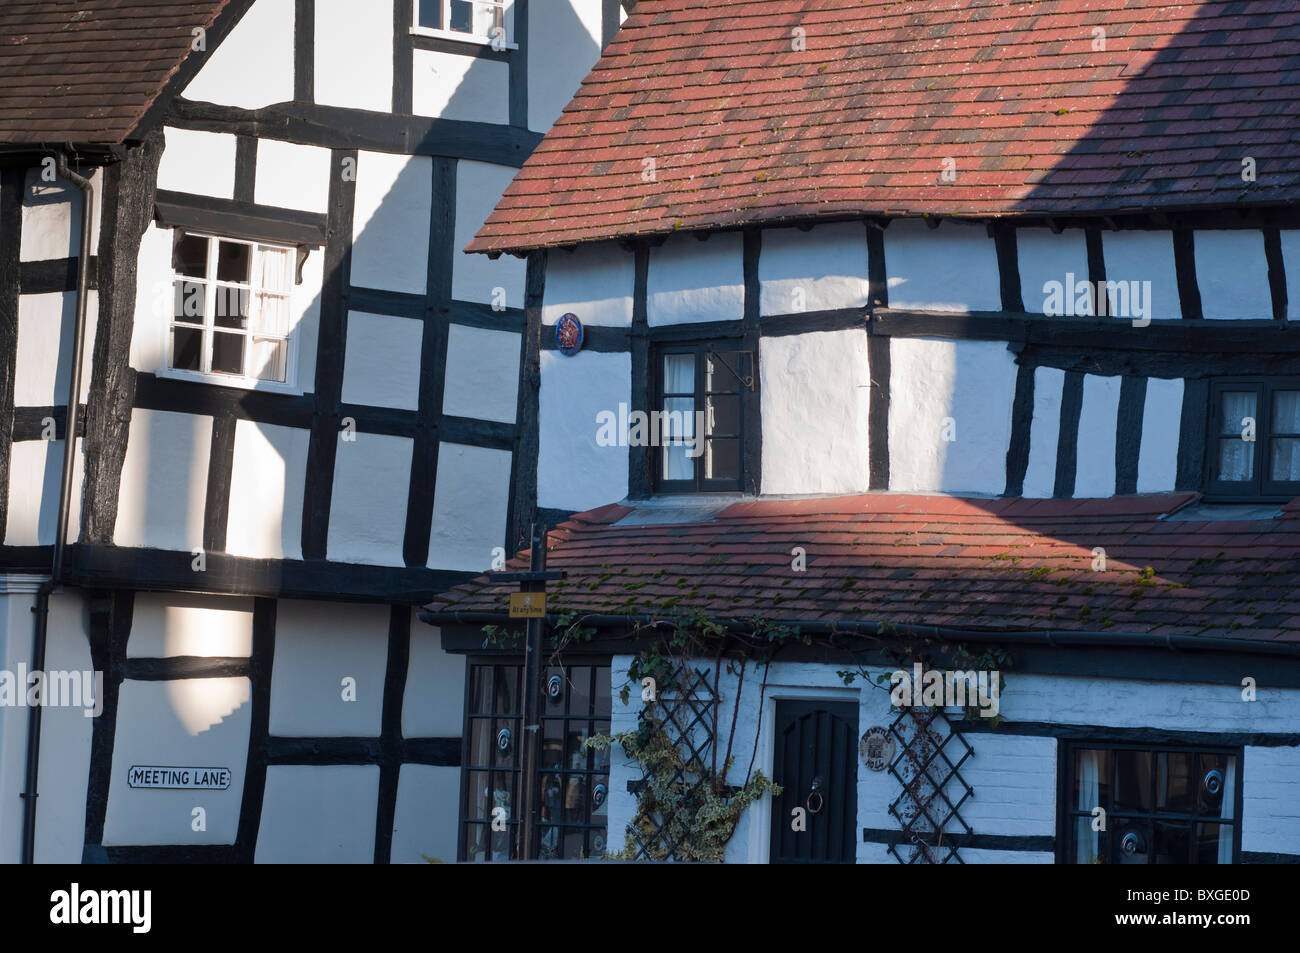 Timber framed buildings in the market town of Alcester in Warwickshire, England - Stock Image